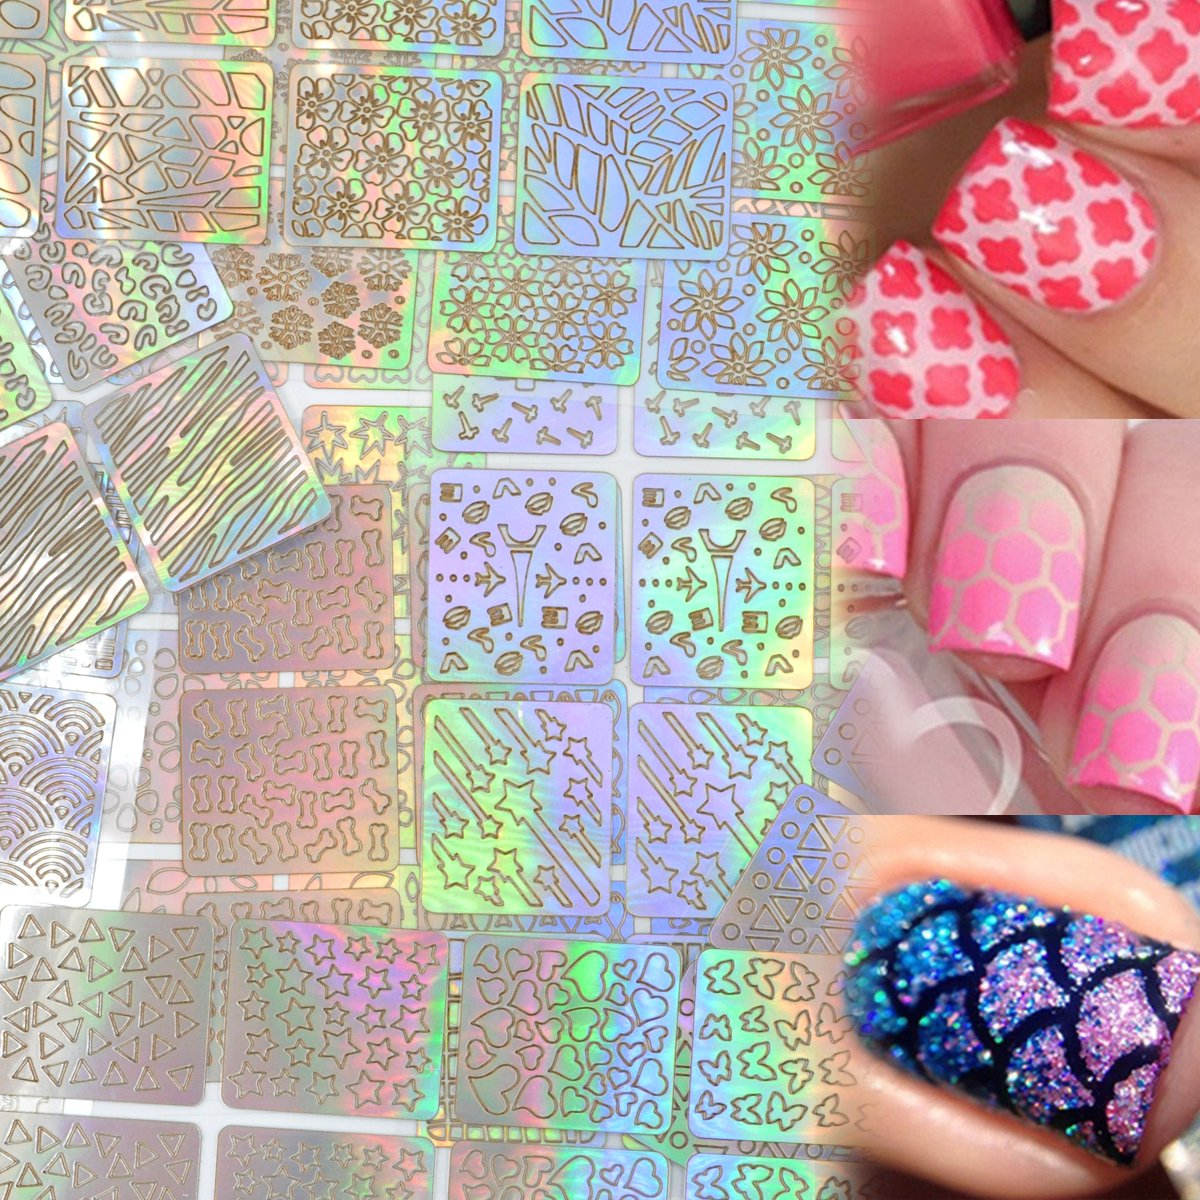 Lady Up 288 Pieces, Hollow Nail Vinyls Stencil Stickers for Nail Art Design Cute and Easy Apply,24 sheets with 96 Designs